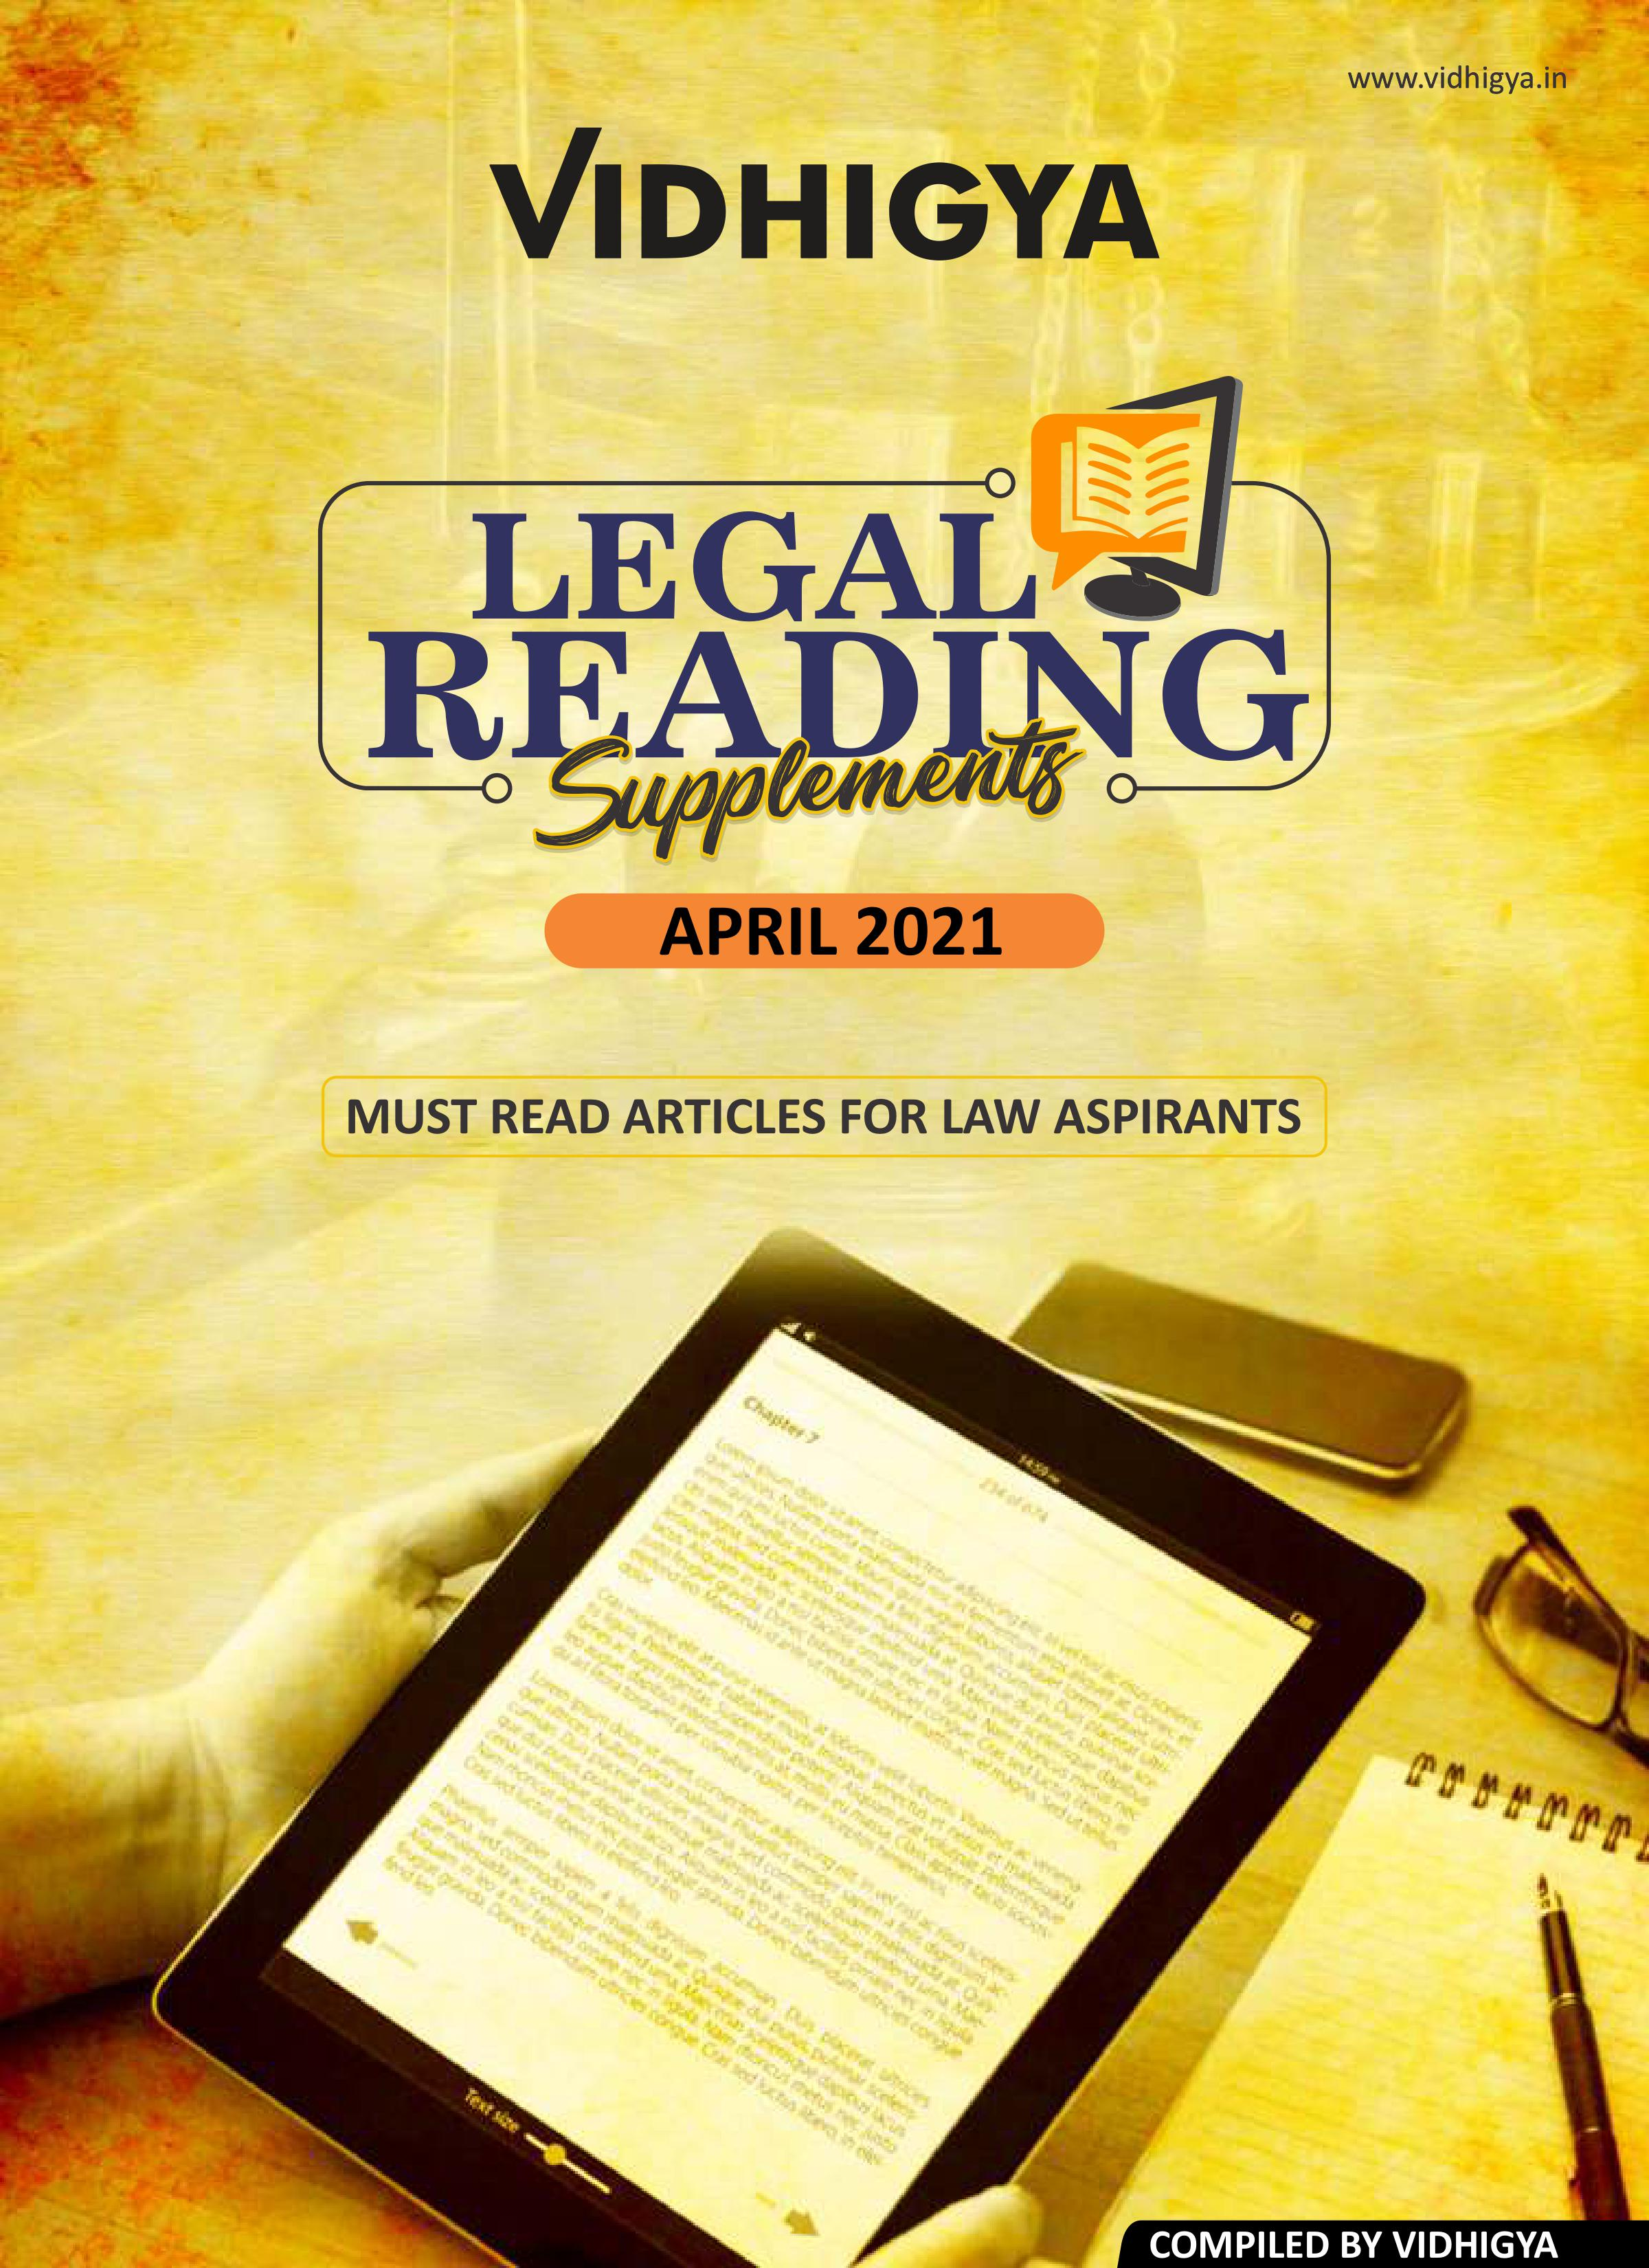 https://www.vidhigya.in/CLAT, AILET, LEGAL , IMPORTANT ARTICLES, APRIL, CURRENT AFFAIRS, VIDHIGYA, CLAT 2022, BEST CLAT COACHING, ONLINE CLAT COACHING, CLAT COACHING